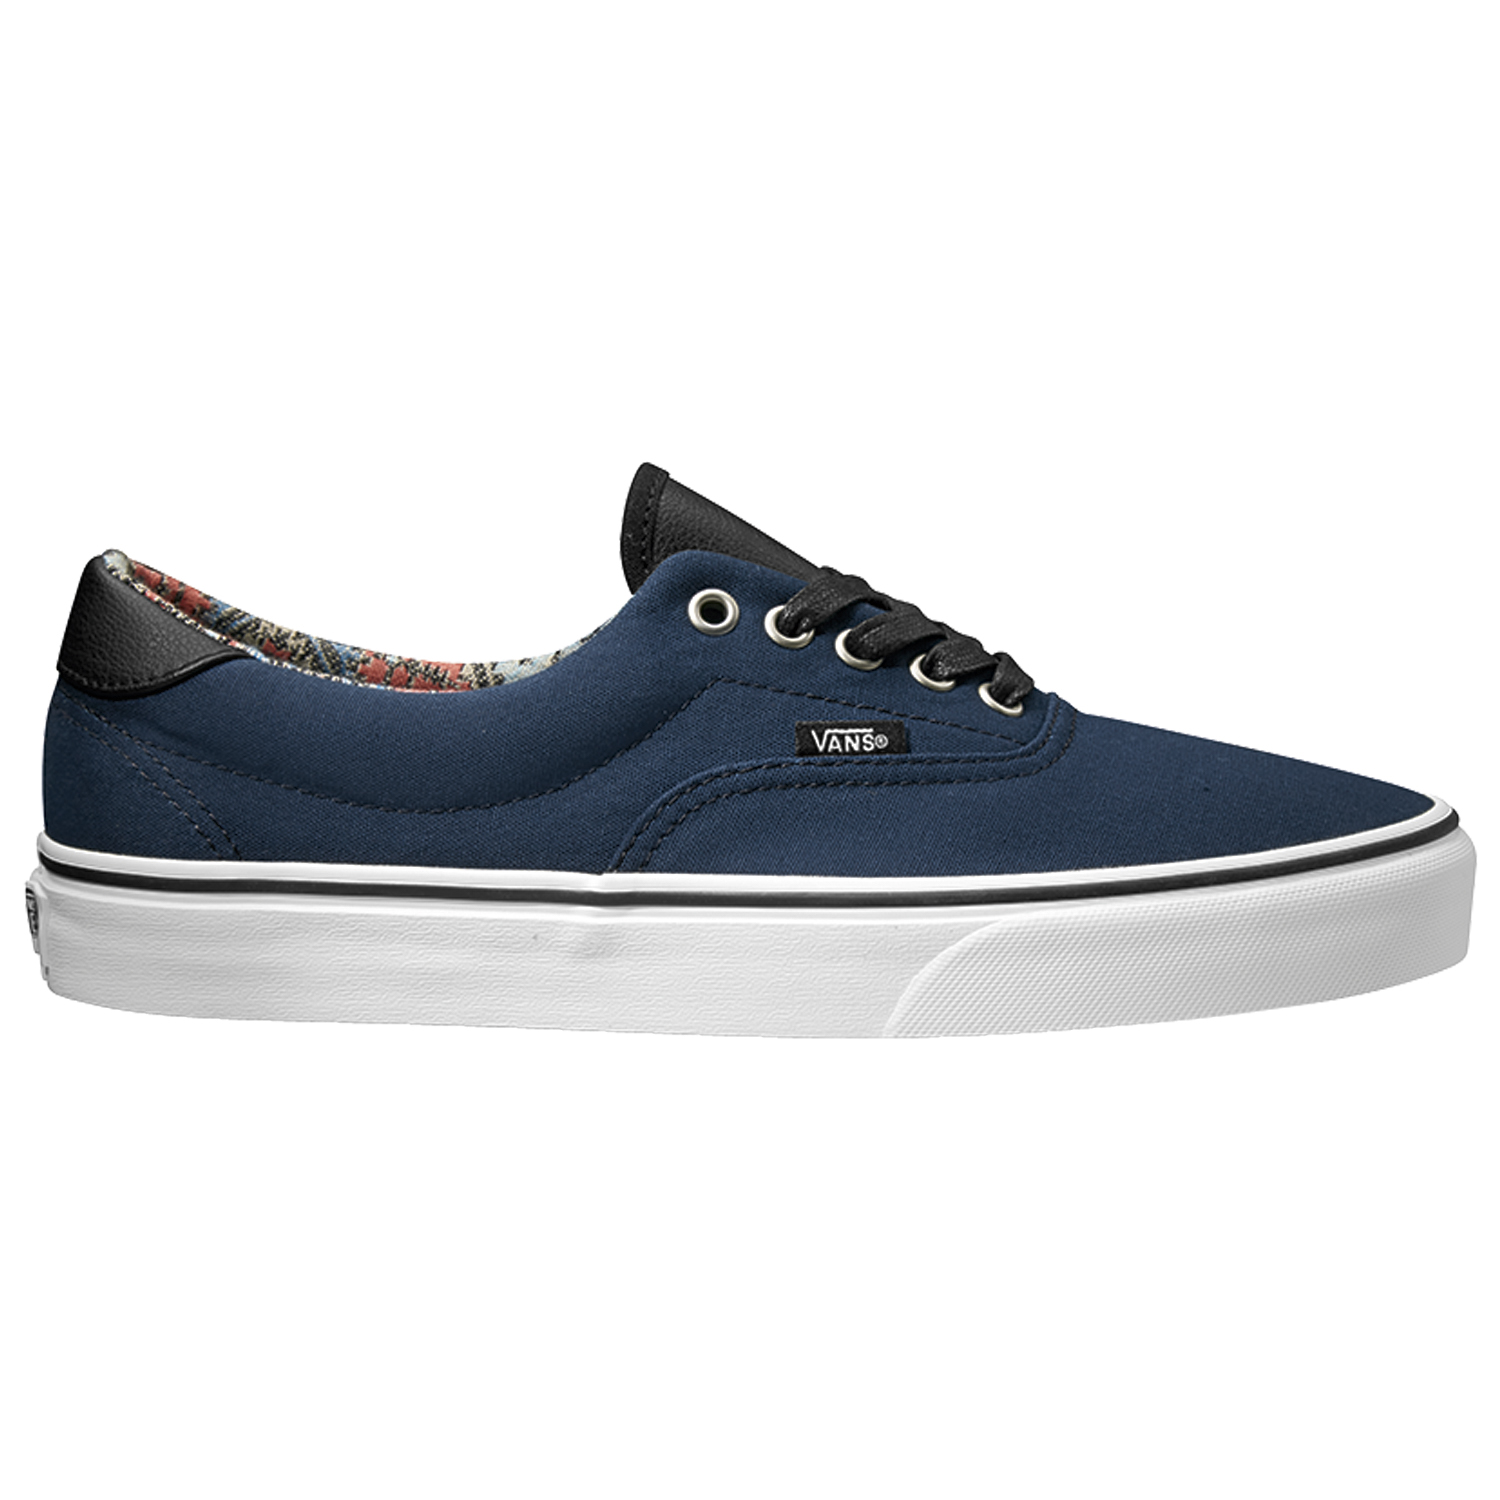 vans-era-59-cl-moroccan-goe-dress-blues-139-90